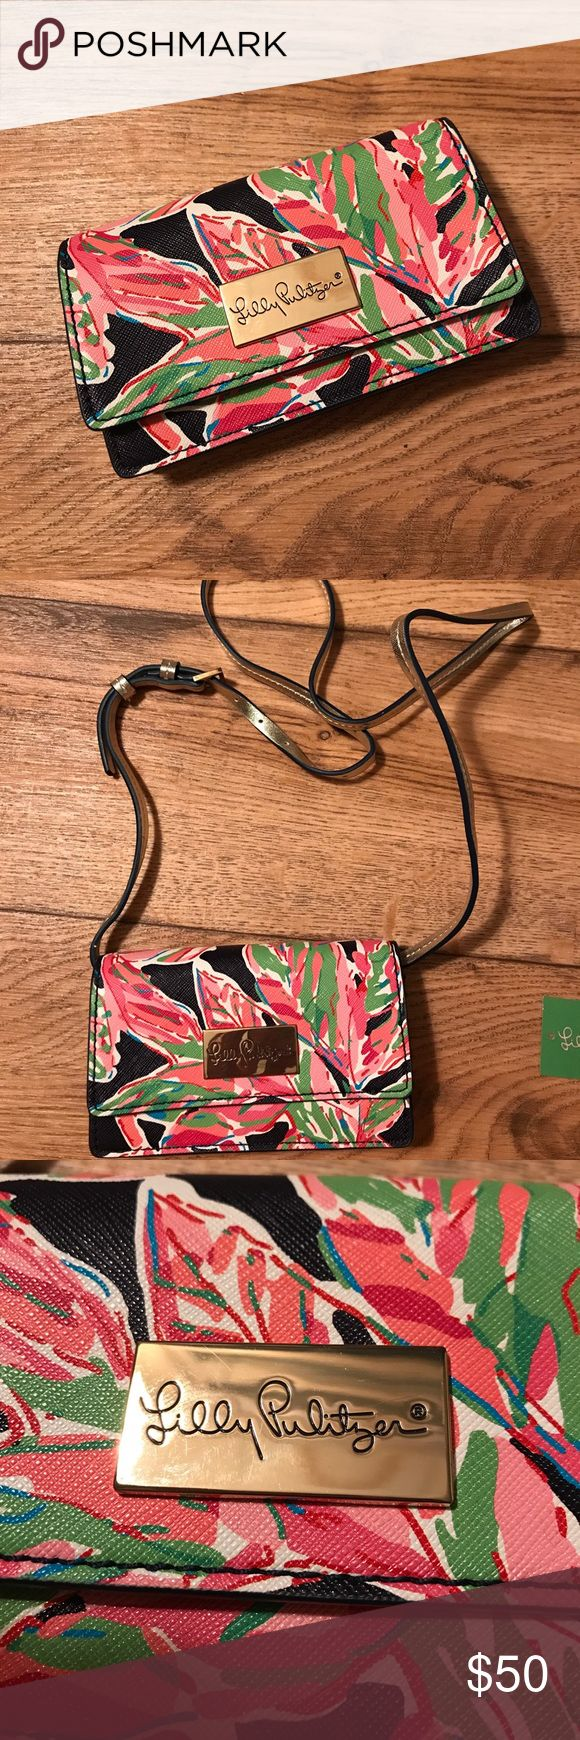 "🆕Lilly Pulitzer It's A Date Crossbody Bag Cute crossbody bag, 7"" long, 4"" high. Pattern is ""in the vias"". Has three inner card slots and a cash slot, and will hold an iPhone 7. Gold-tone strap is adjustable and removable, drop is +/-24"". Used a few times, there is one white mark on the back that I haven't tried to remove. Retail $88. PRICE IS FIRM🚫NO TRADES Lilly Pulitzer Bags Crossbody Bags"